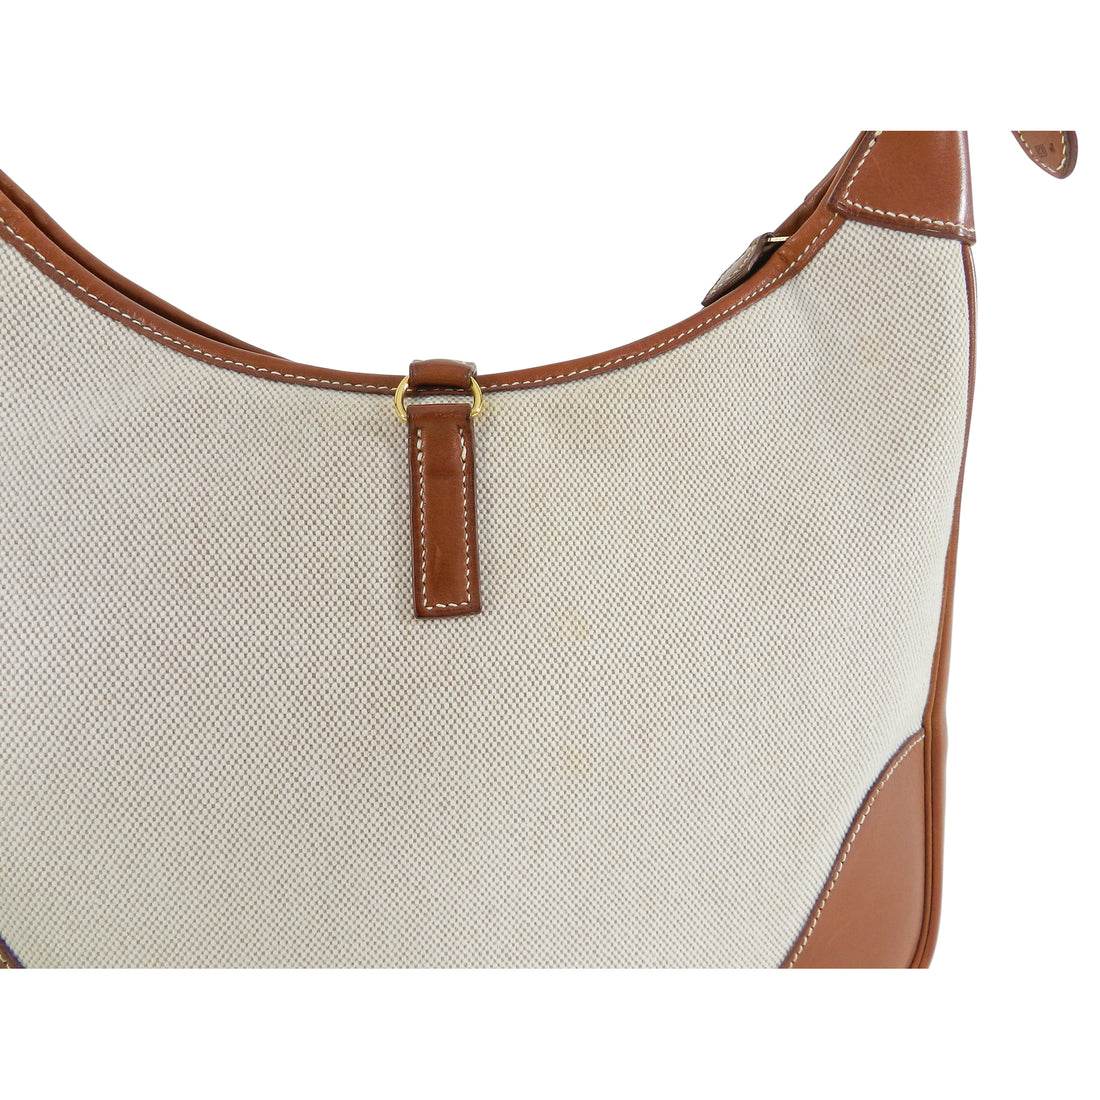 Hermes Trim II Toile and Leather 31cm Bag